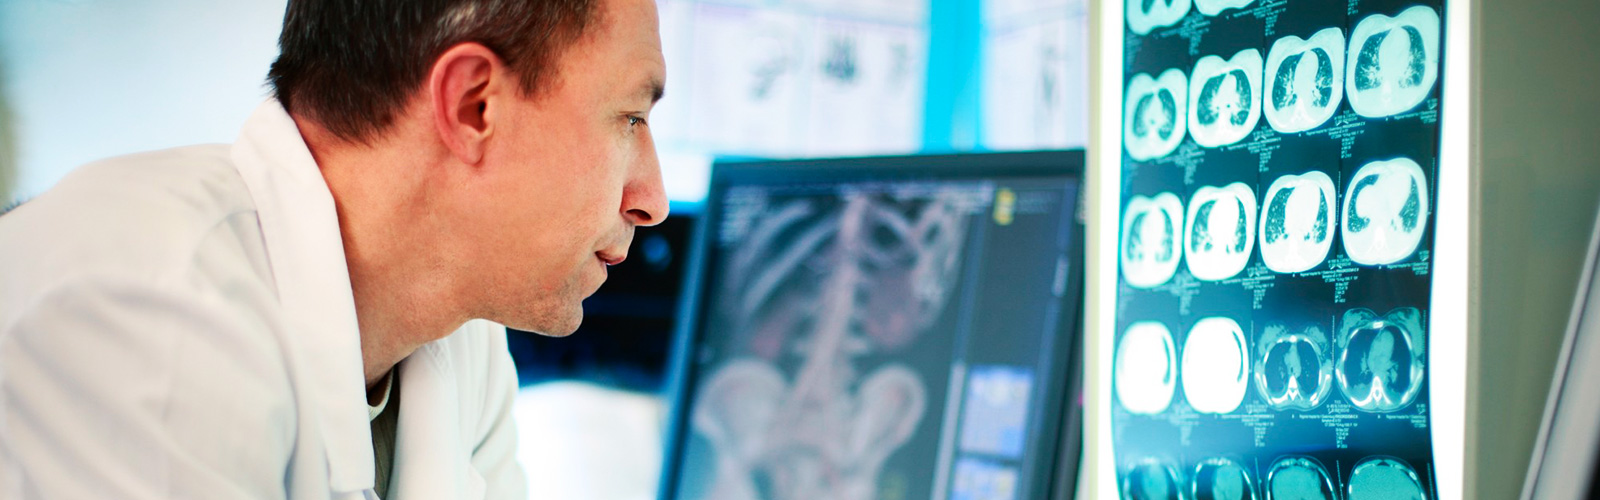 Imaging Specialists of Glendale Services in Glendale